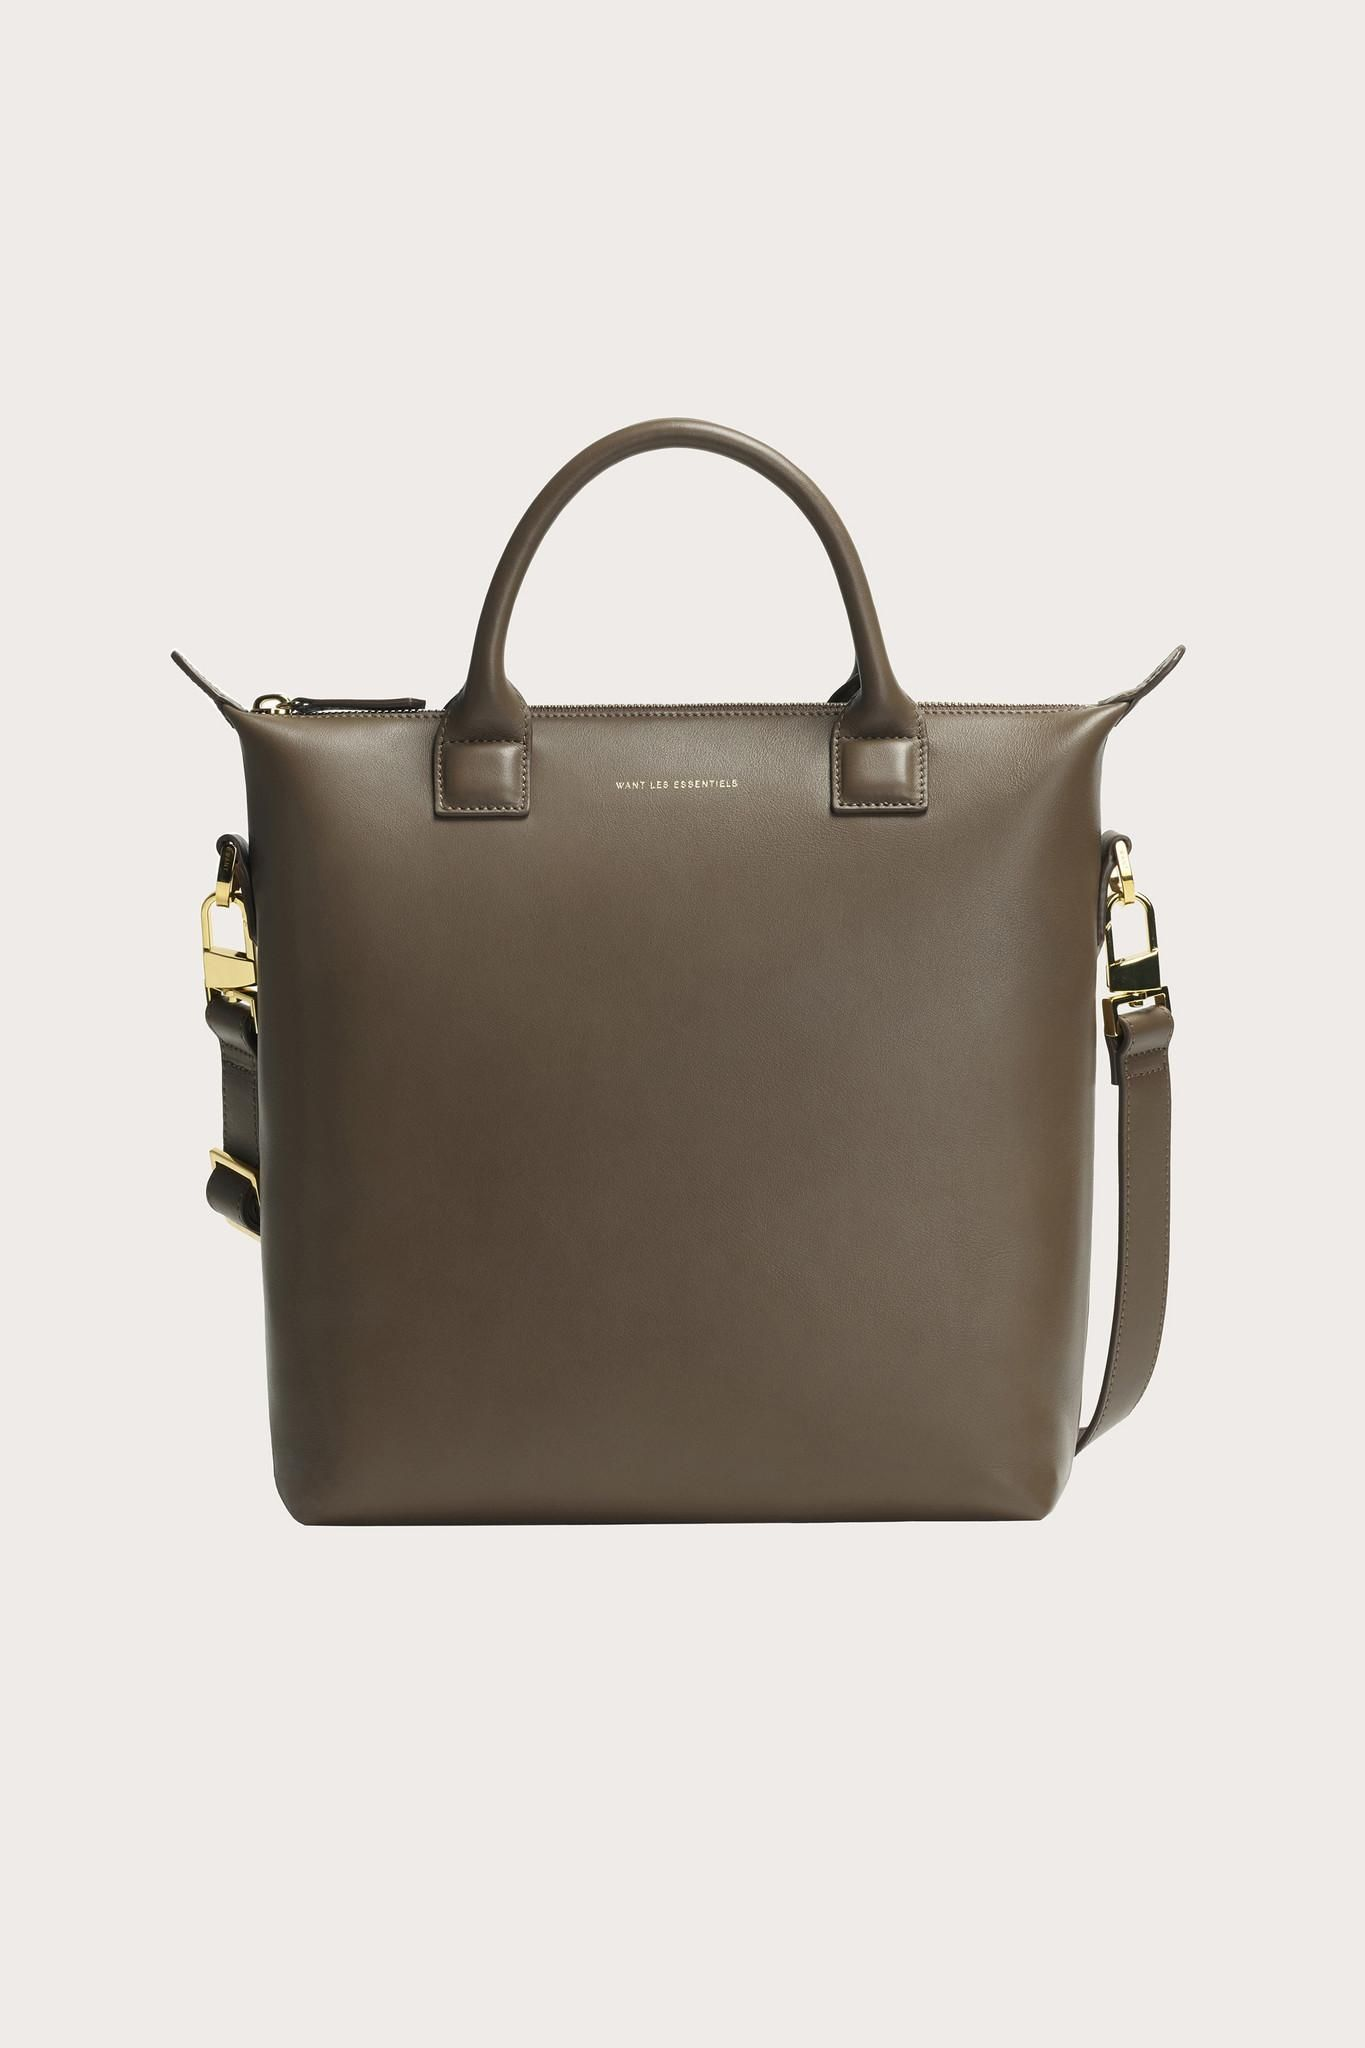 Mini O Hare Tote in Mocha by Want les Essentiels  1938d95f73459